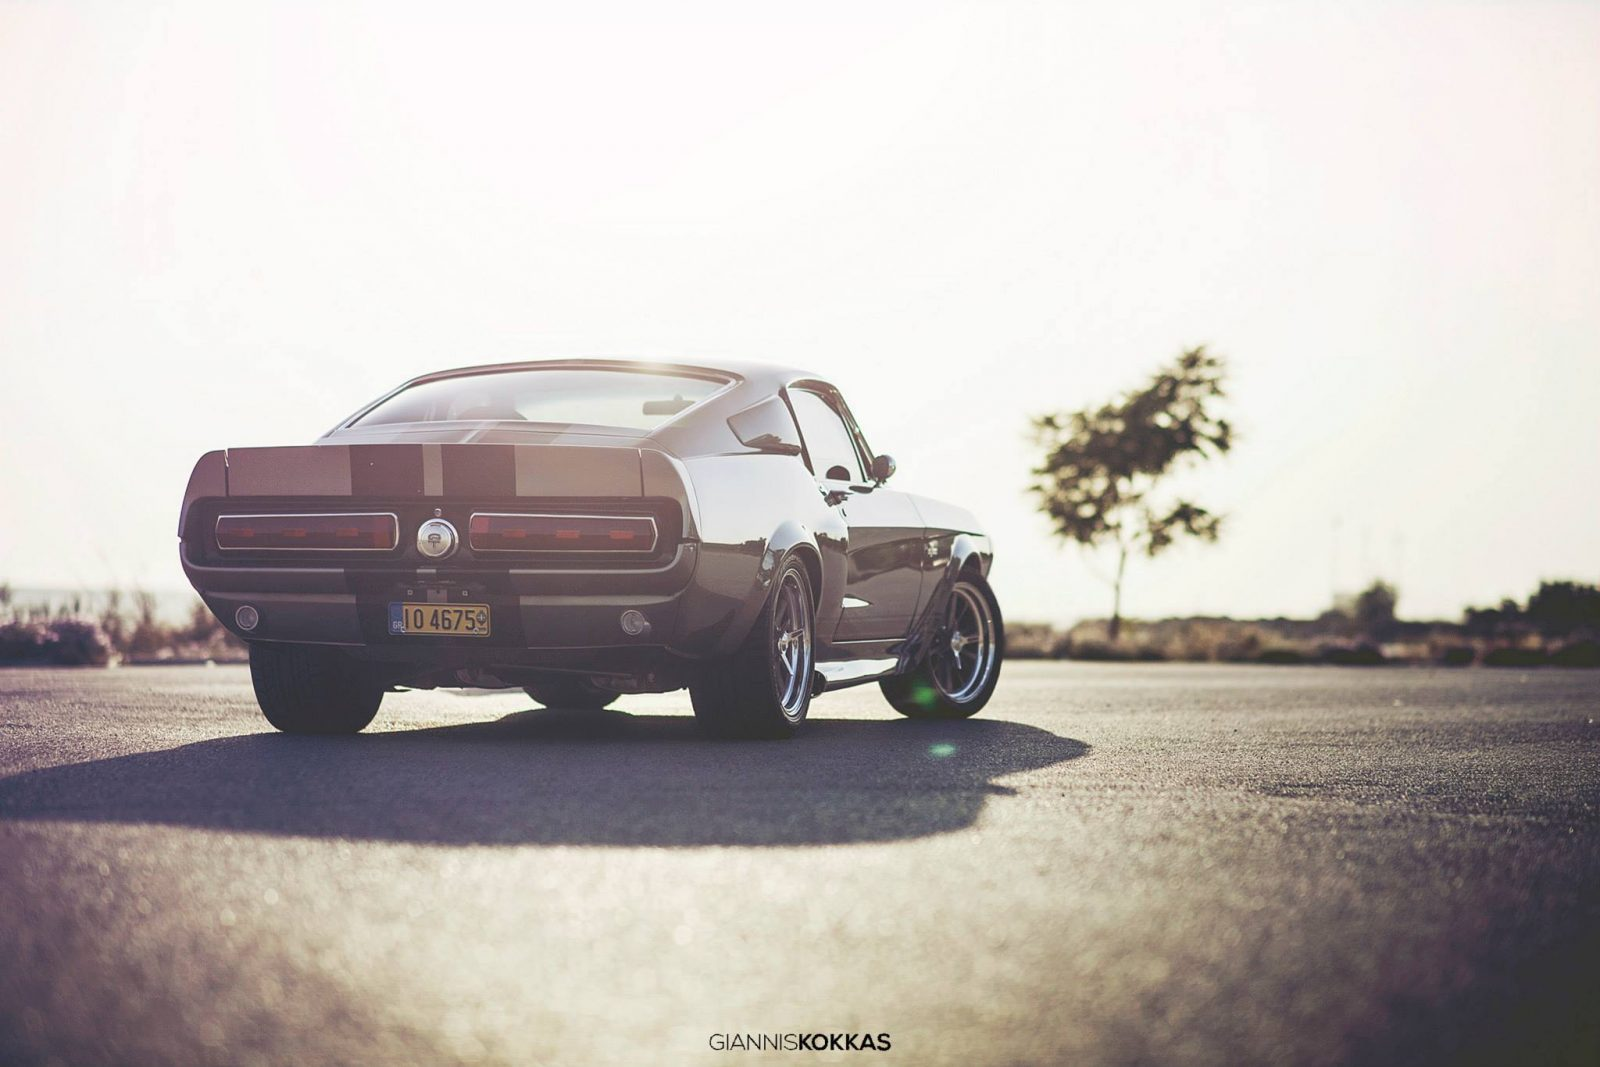 Greek Shelby Mustang GT500 - Eleanor